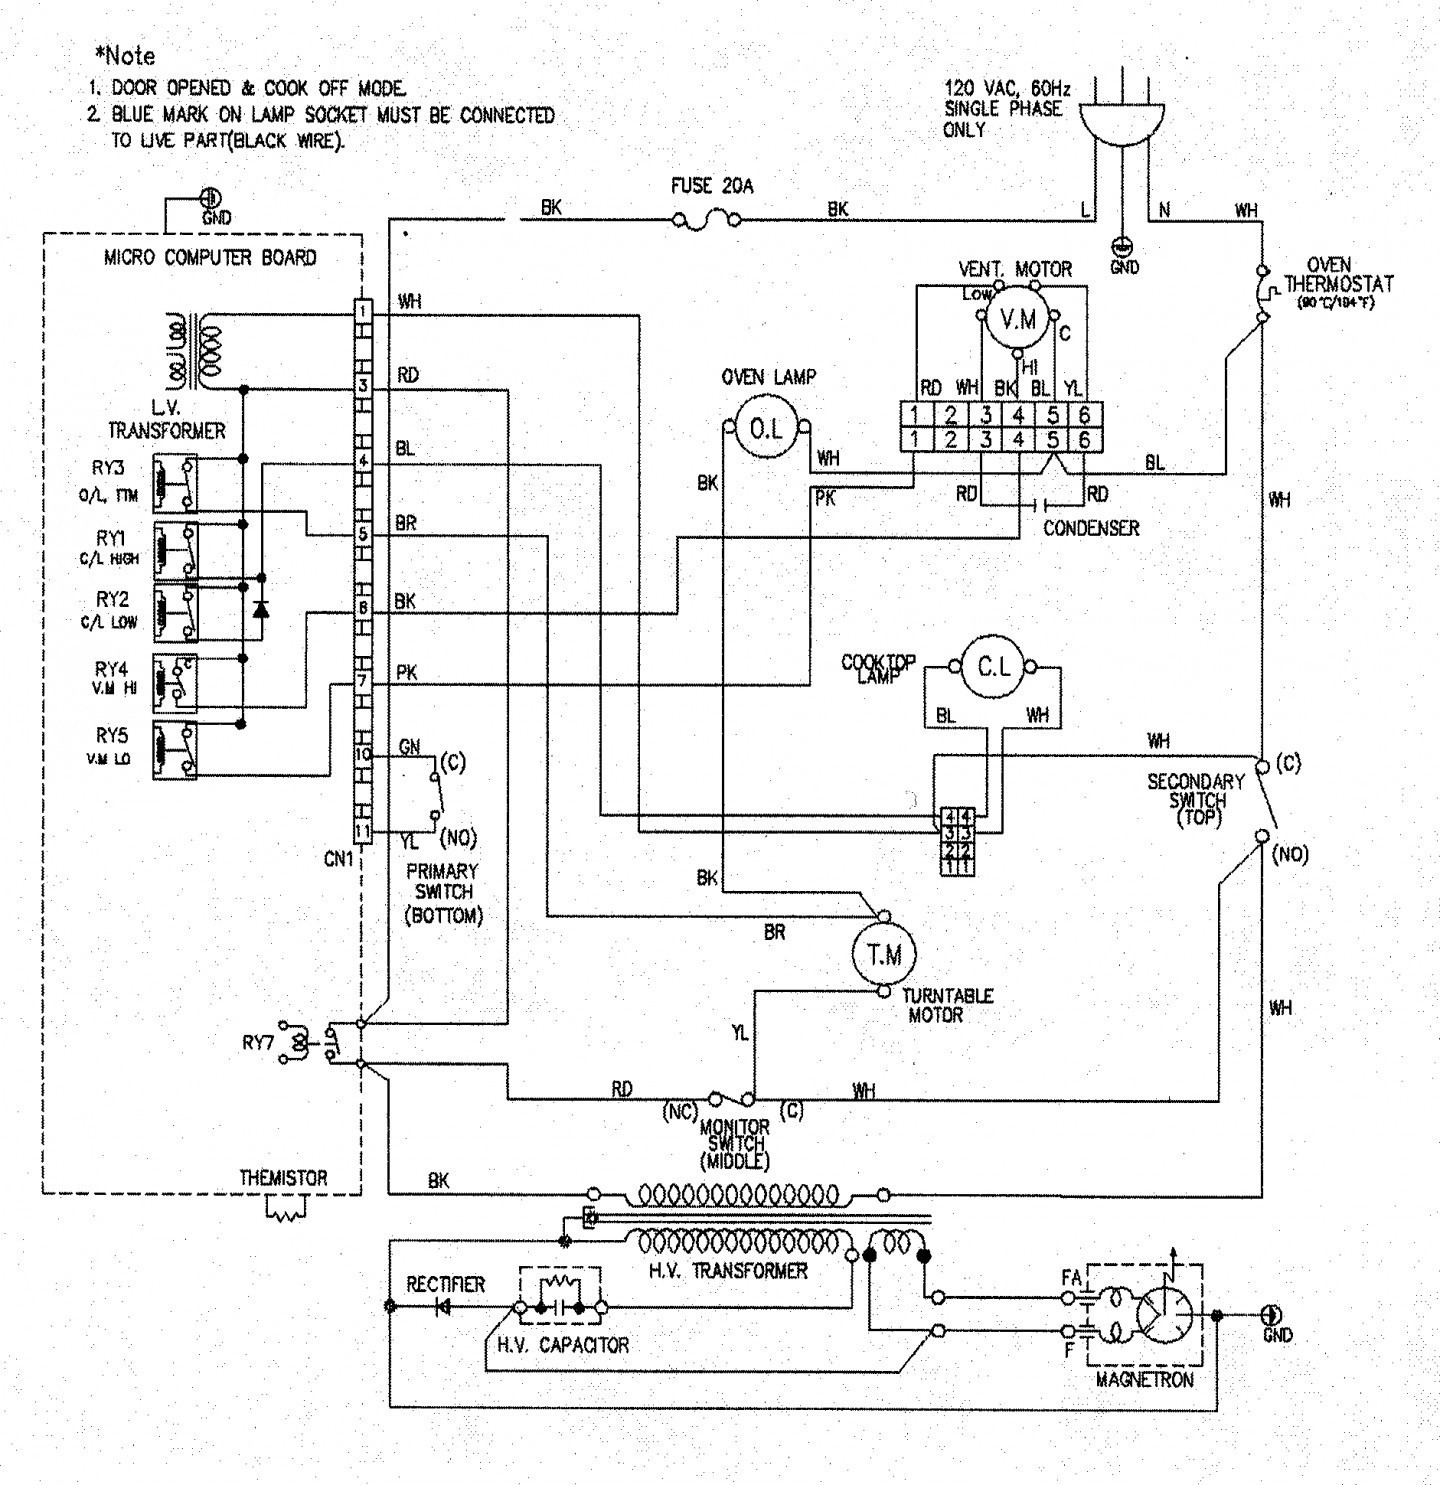 Wiring Diagram for Electric Cooker New Wiring Diagram Electric Hob Save Electric Stove Wiring Diagram